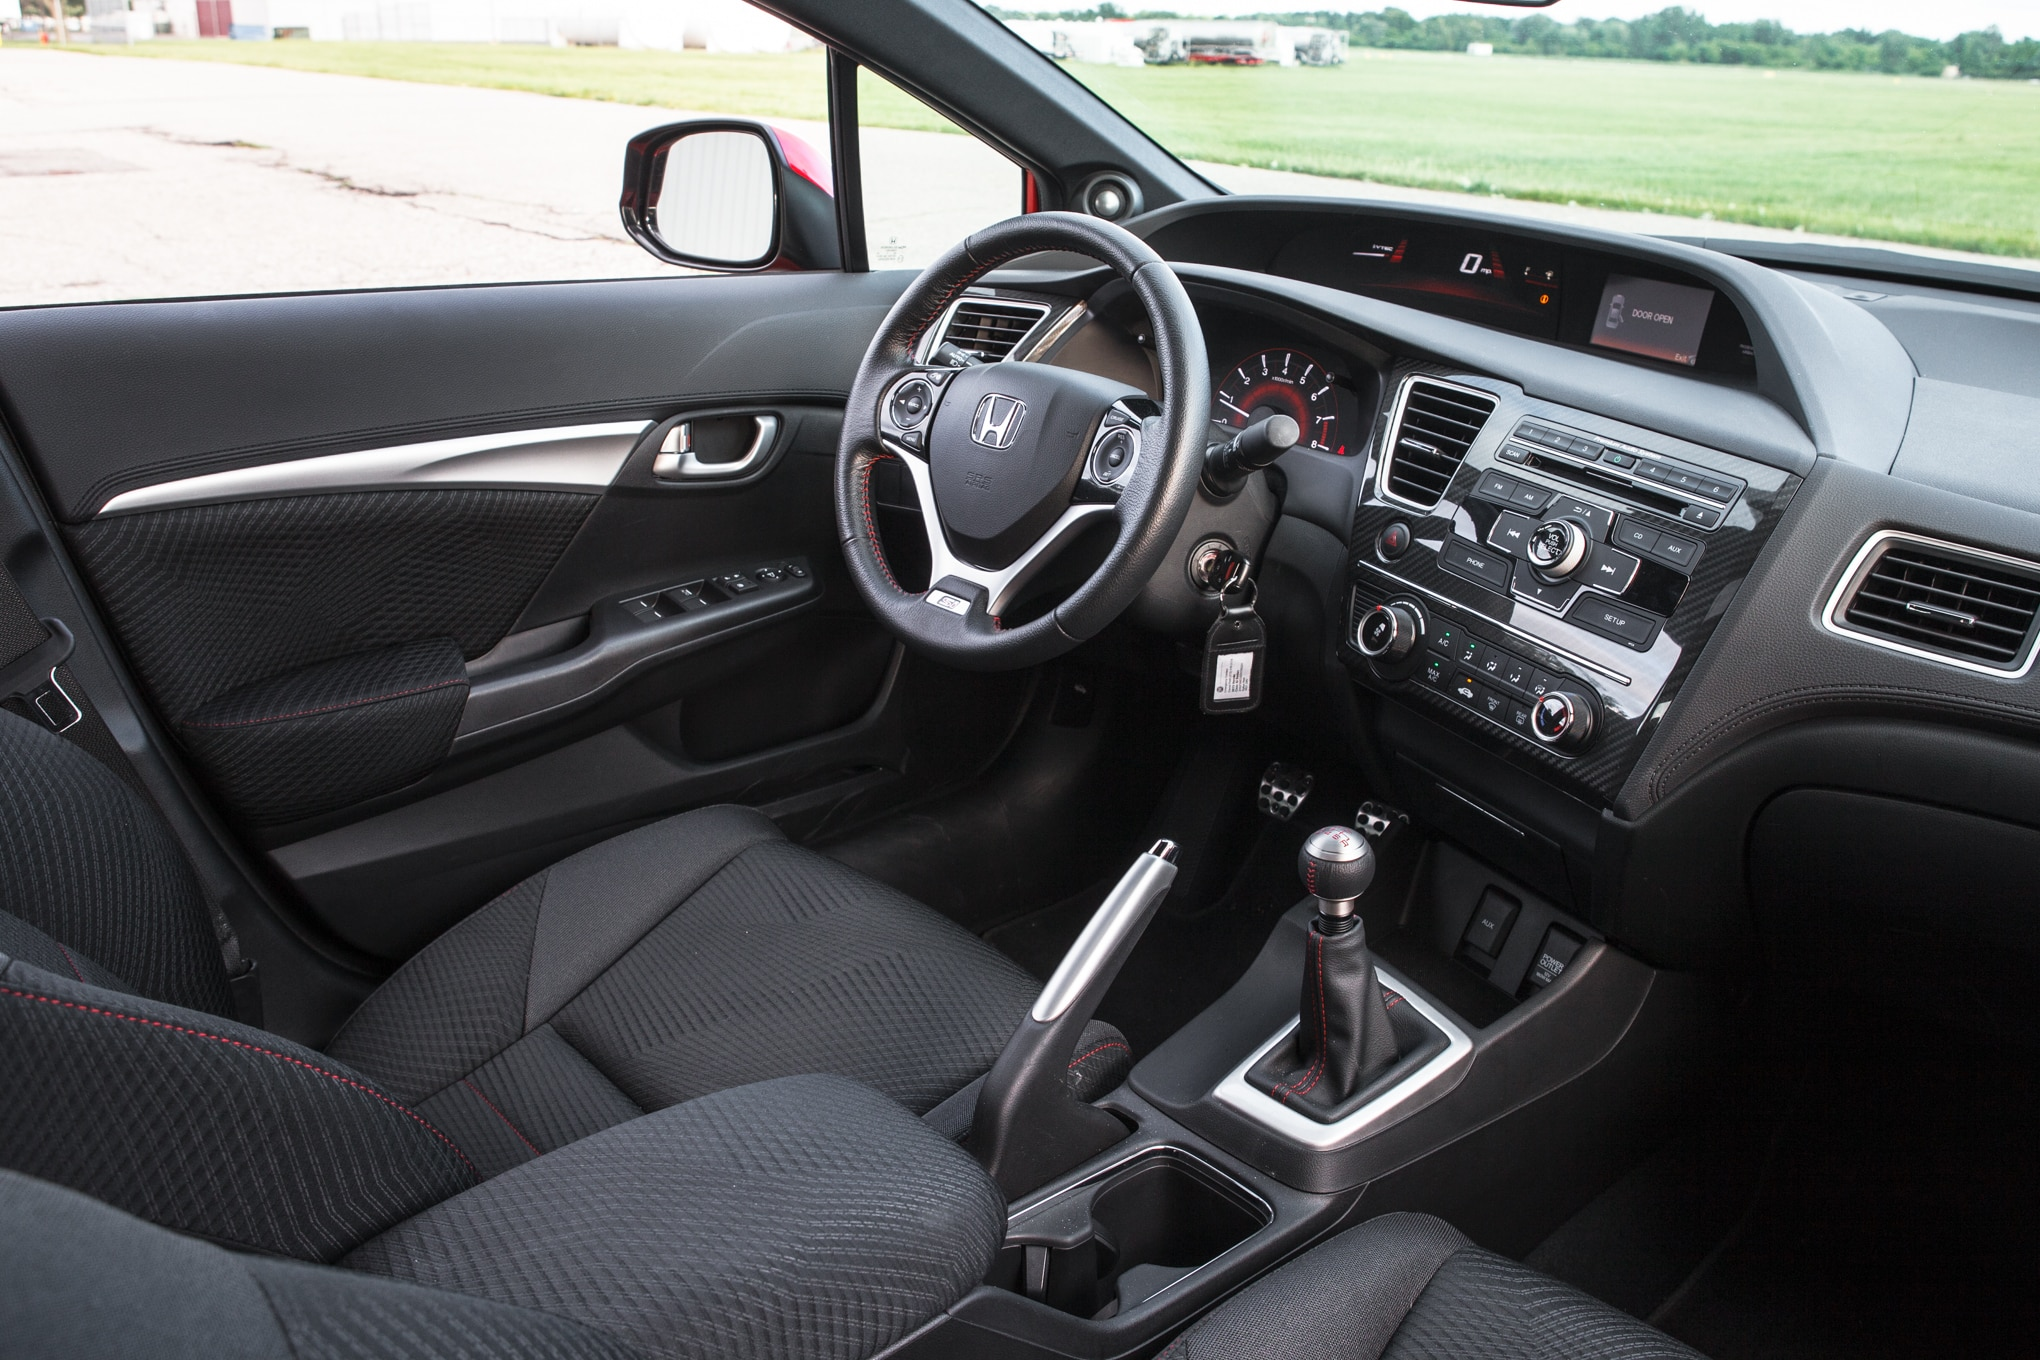 honda civic manual 2013 interior images galleries with a bite. Black Bedroom Furniture Sets. Home Design Ideas